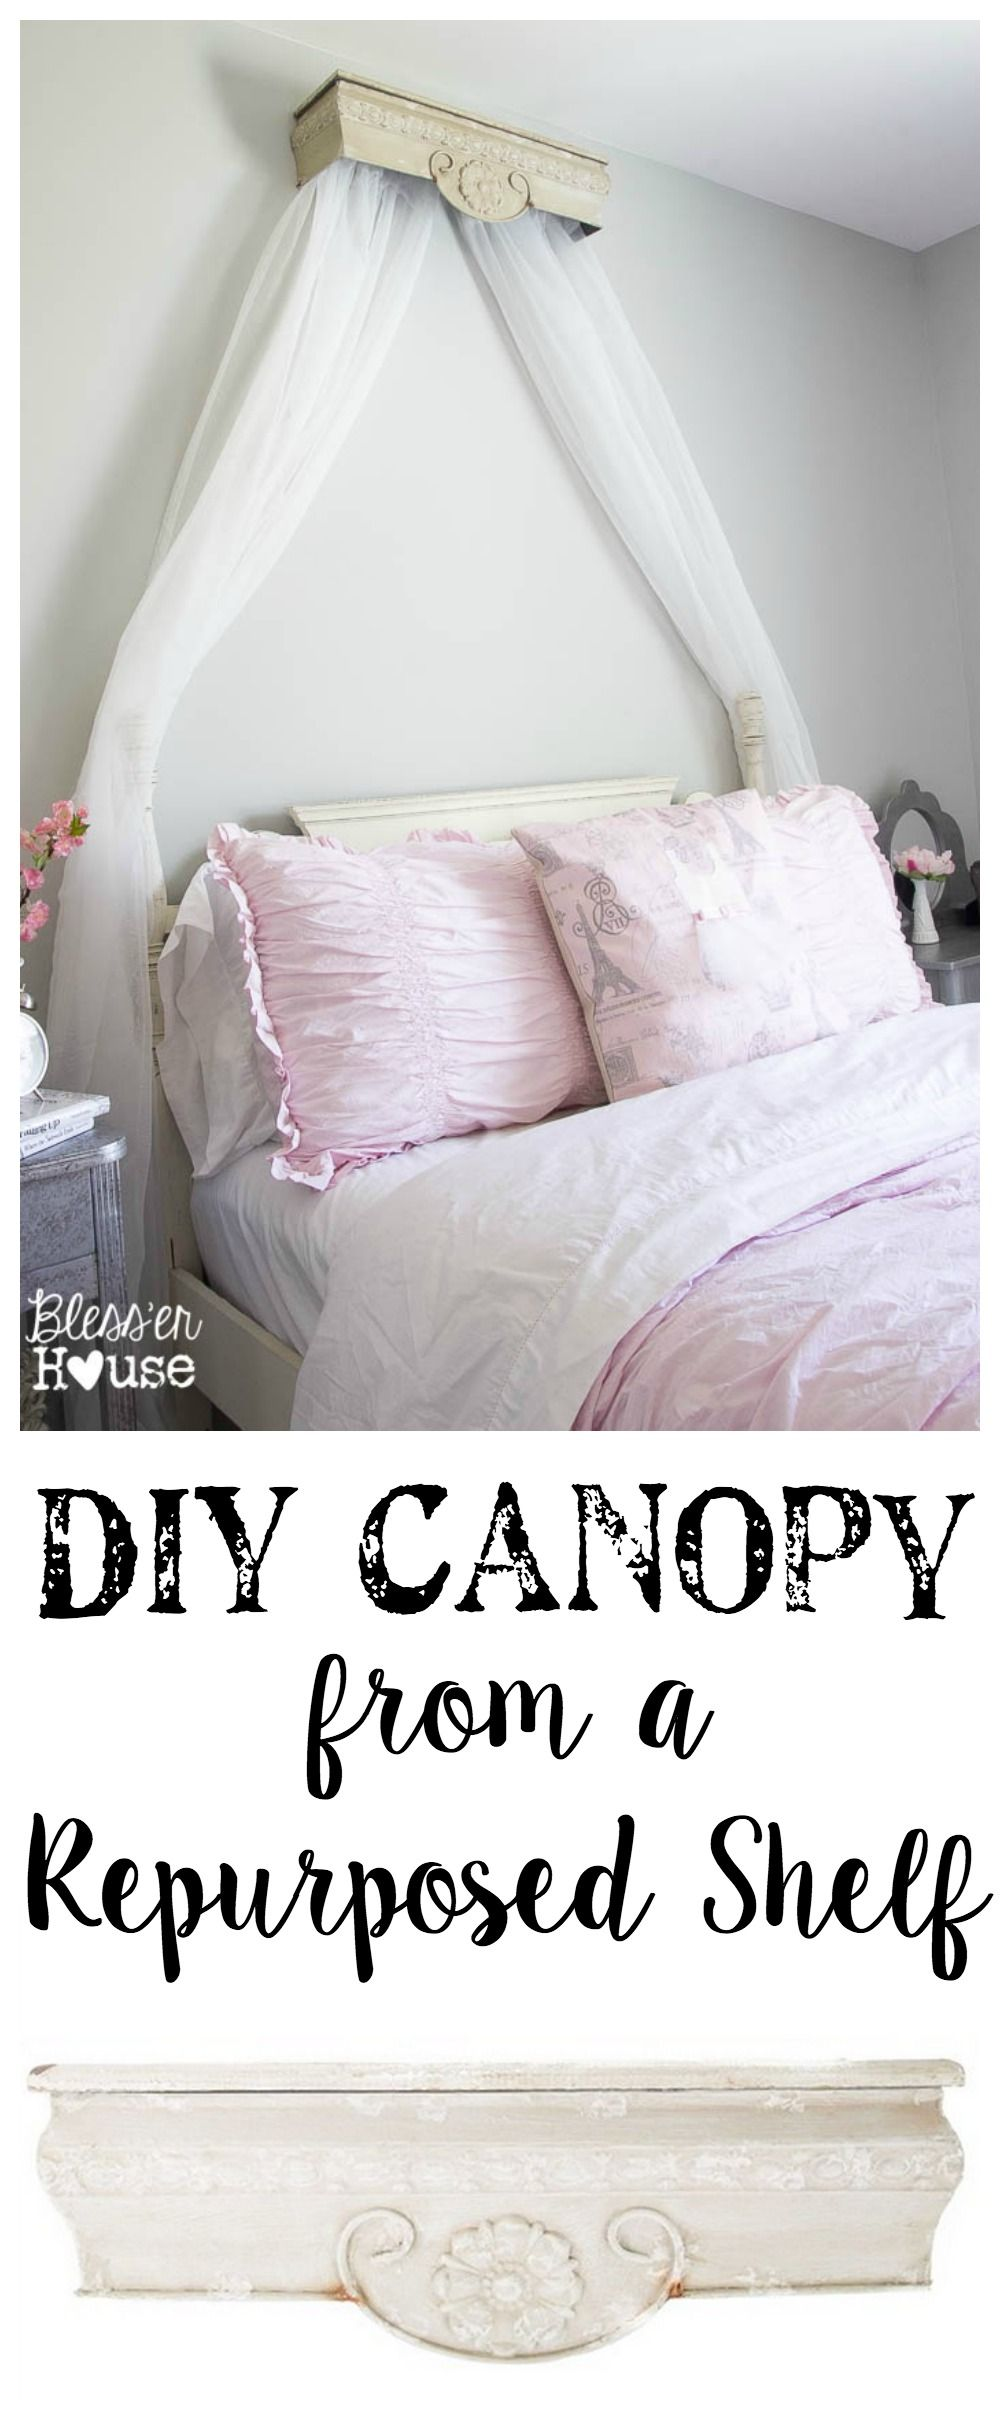 DIY Canopy Crown from a Repurposed Shelf  sc 1 st  Pinterest & DIY Canopy Crown from a Repurposed Shelf | Diy canopy Rh baby and ...